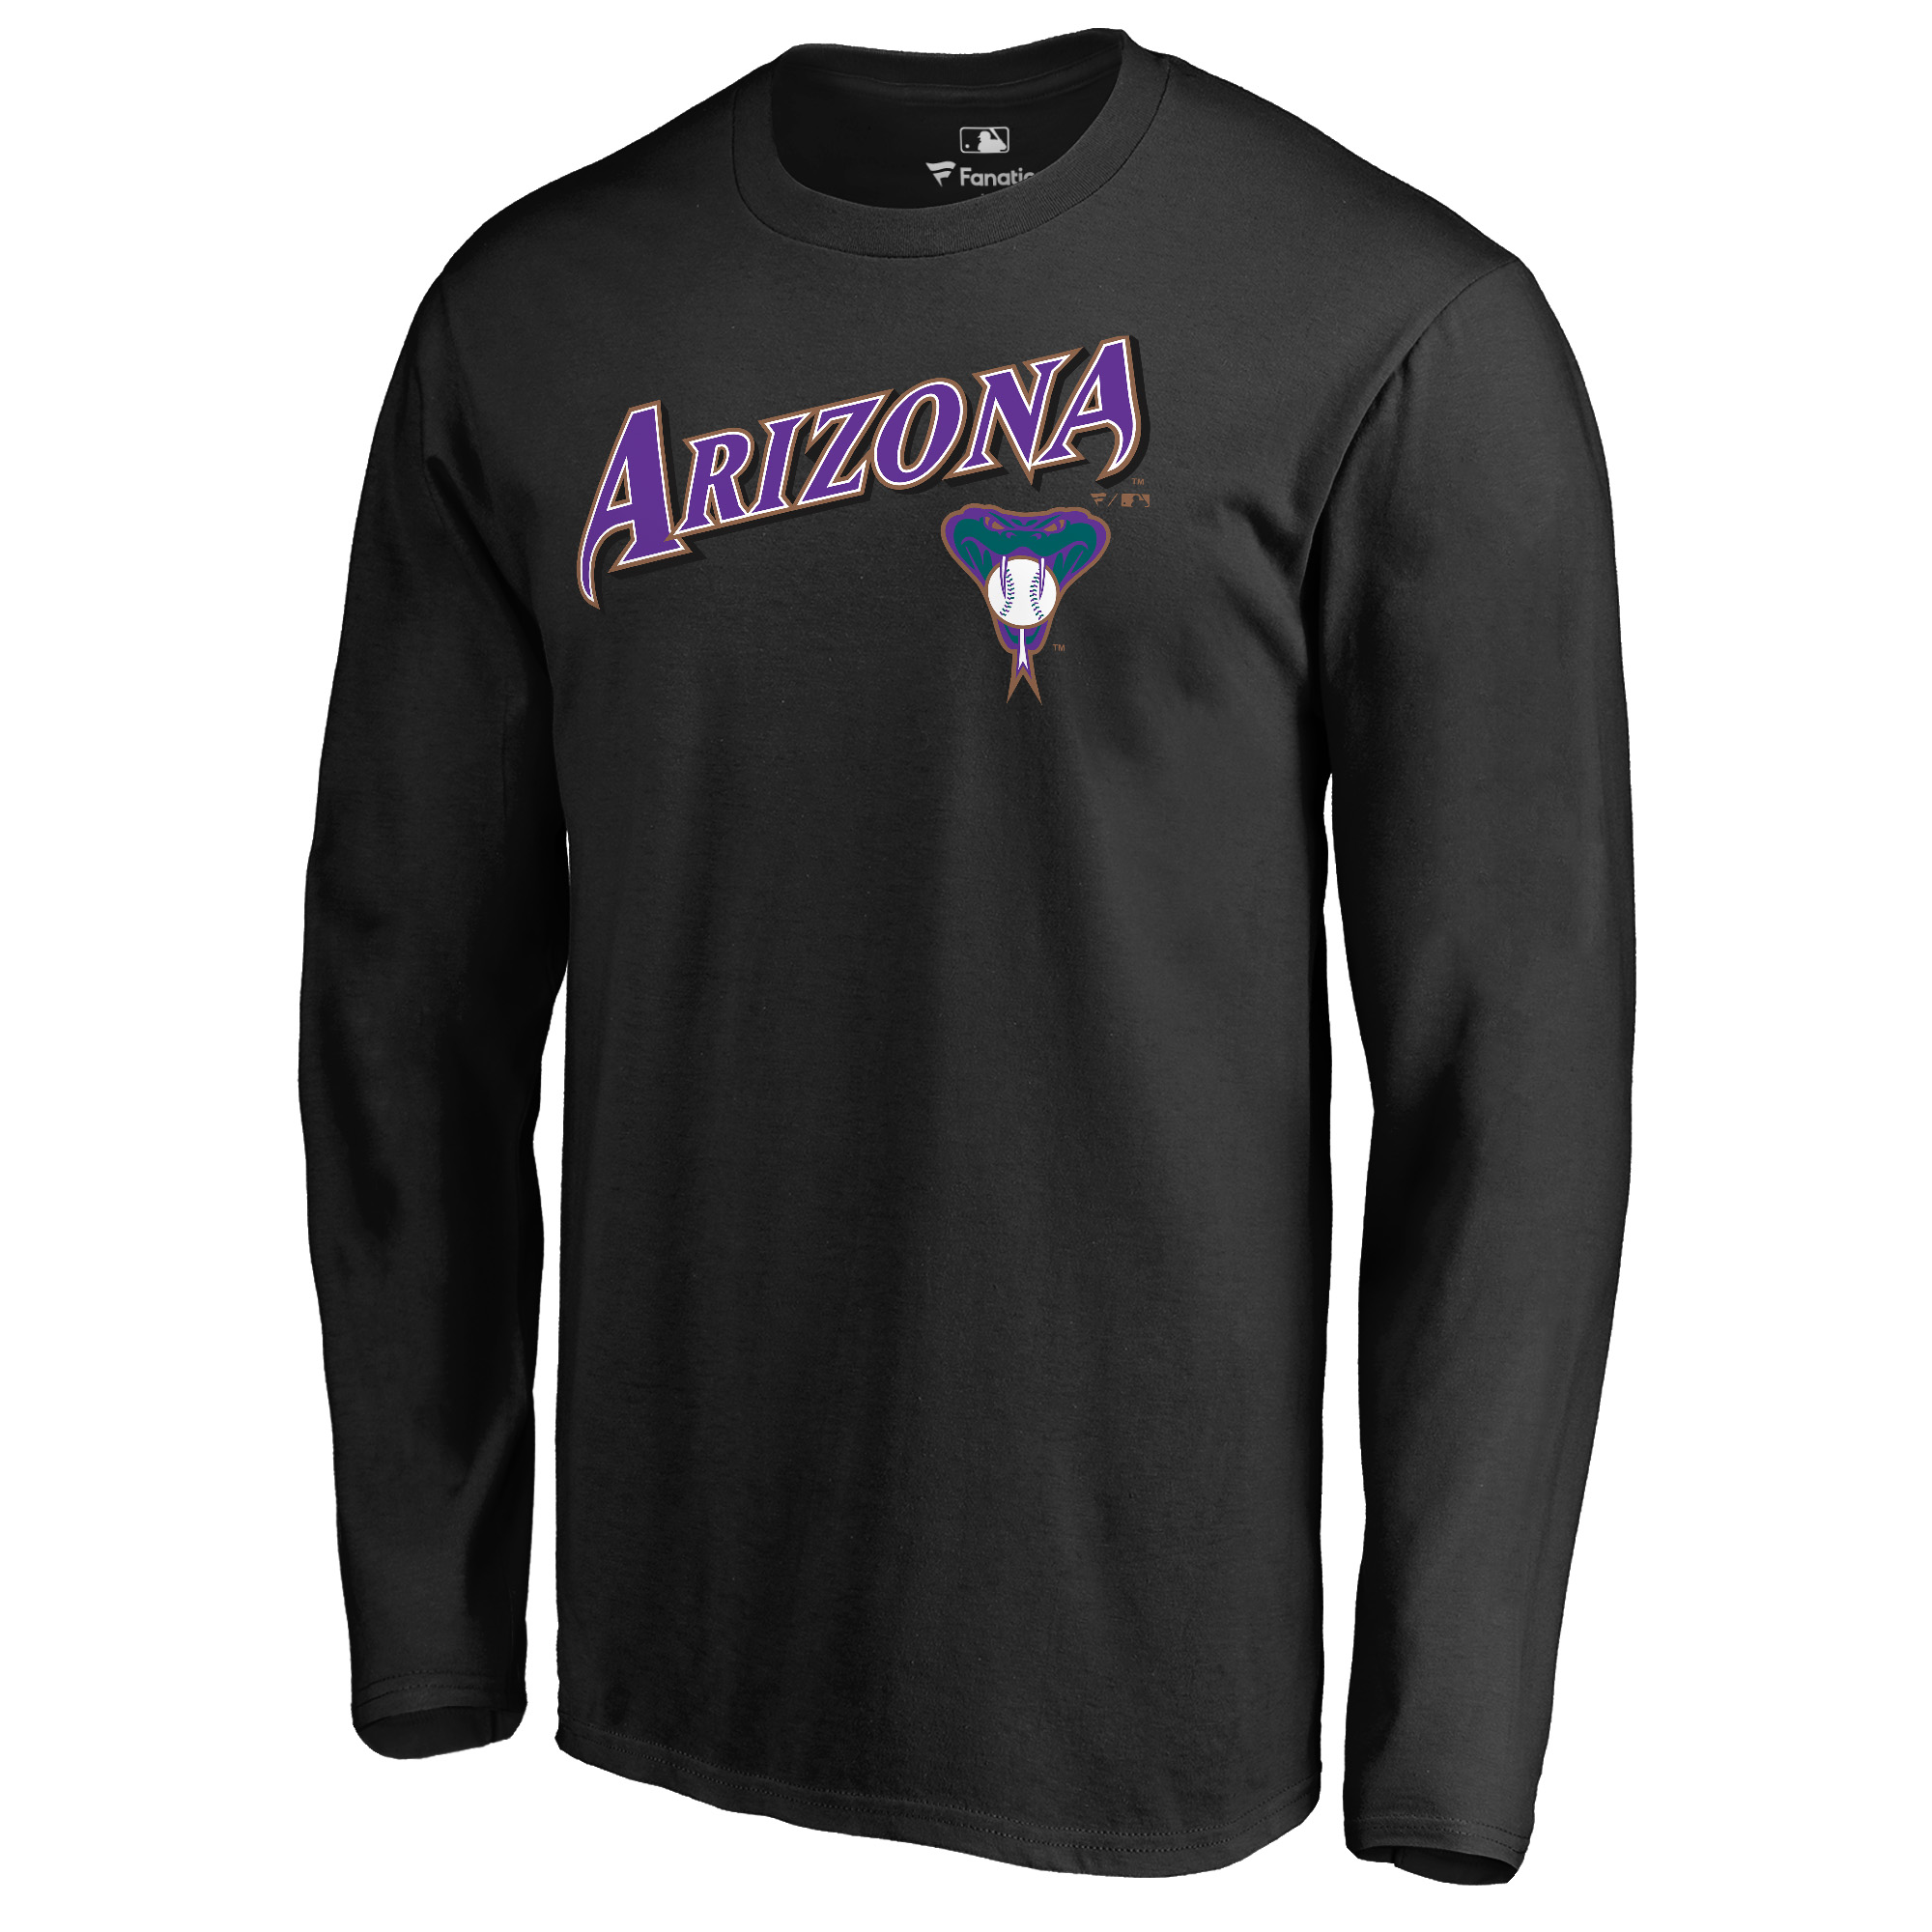 Arizona Diamondbacks Fanatics Branded Cooperstown Collection Wahconah Long Sleeve T-Shirt - Black